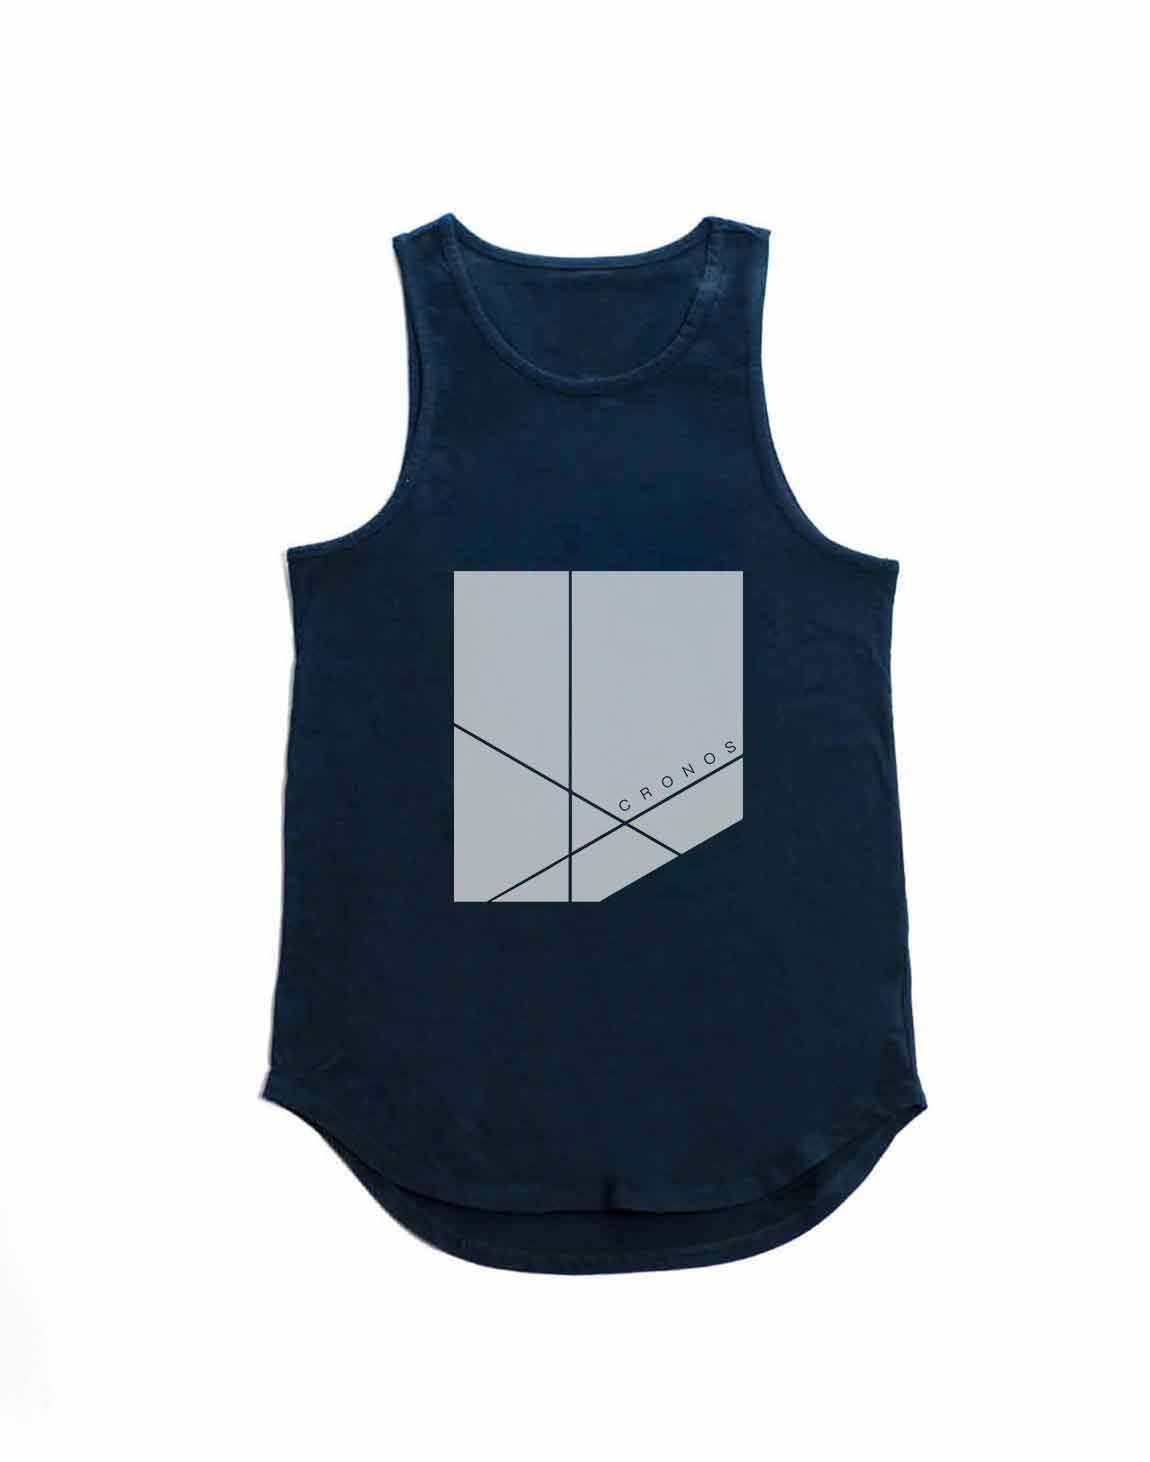 <img class='new_mark_img1' src='https://img.shop-pro.jp/img/new/icons1.gif' style='border:none;display:inline;margin:0px;padding:0px;width:auto;' />CRONOS NEW BOX LOGO TANK TOP【NAVY】